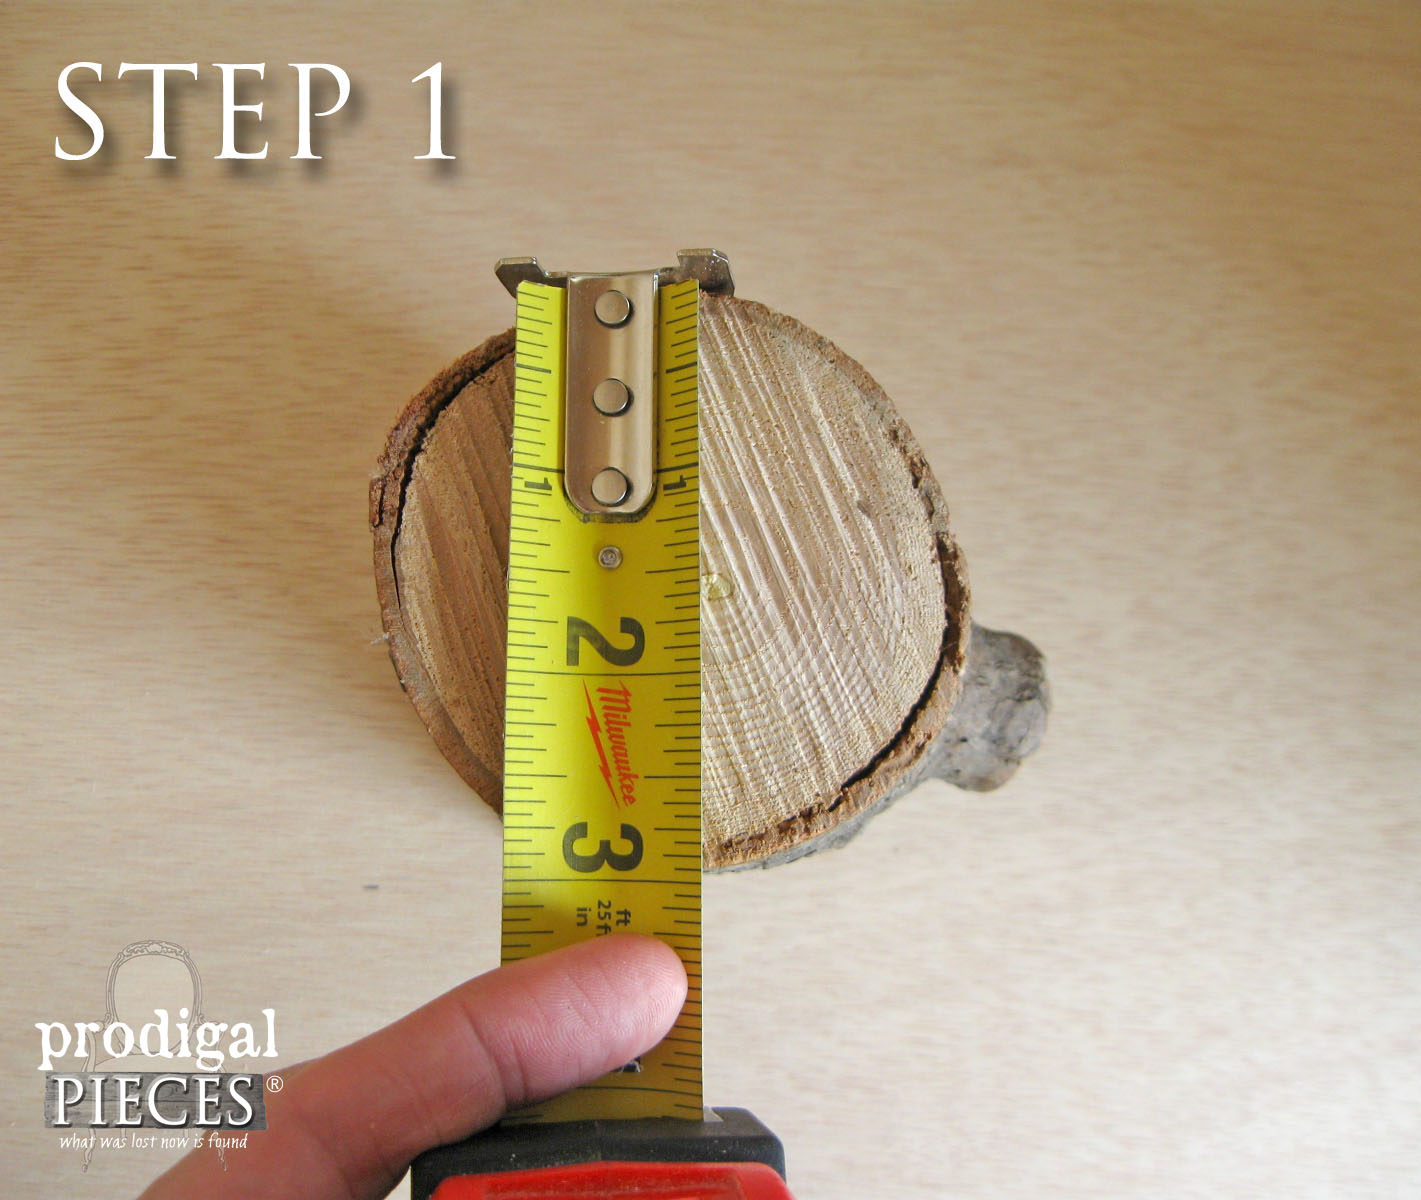 Measuring Log Diameter | Prodigal Pieces | www.prodigalpieces.com